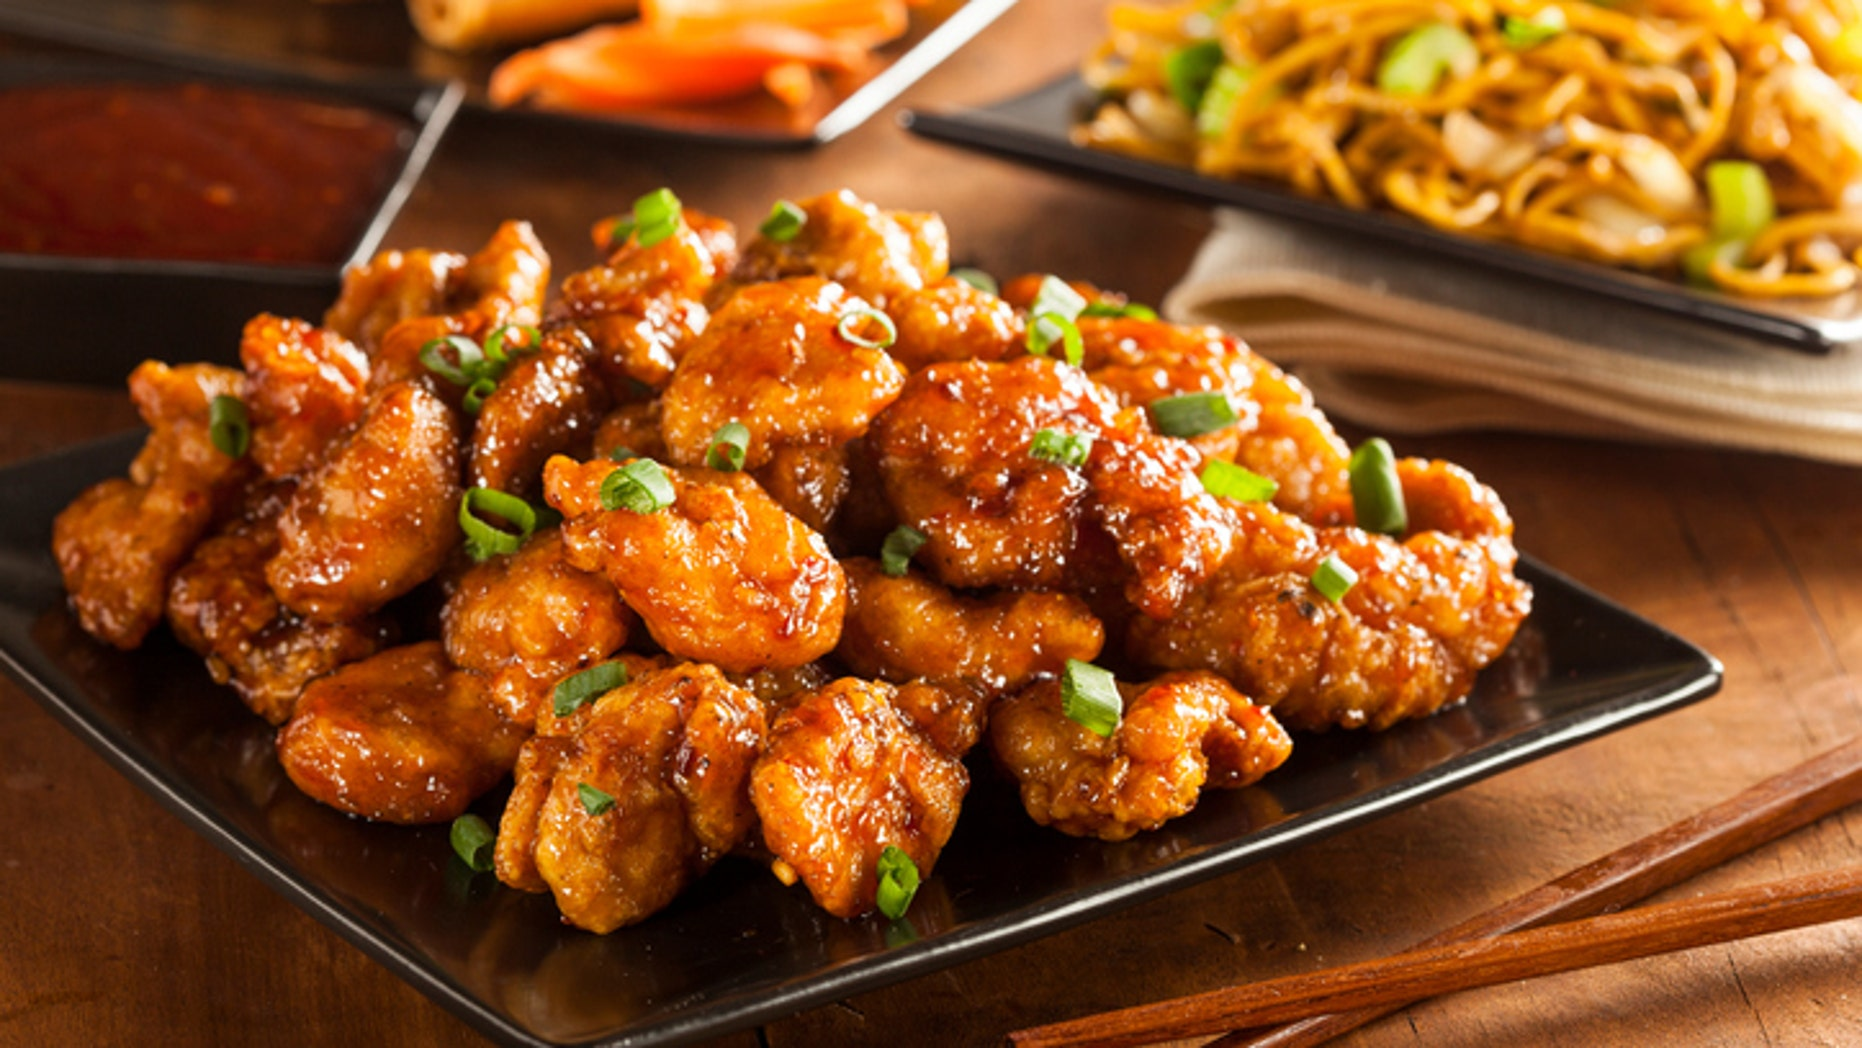 Asian Oranage Chicken with Green Onions for Dinner